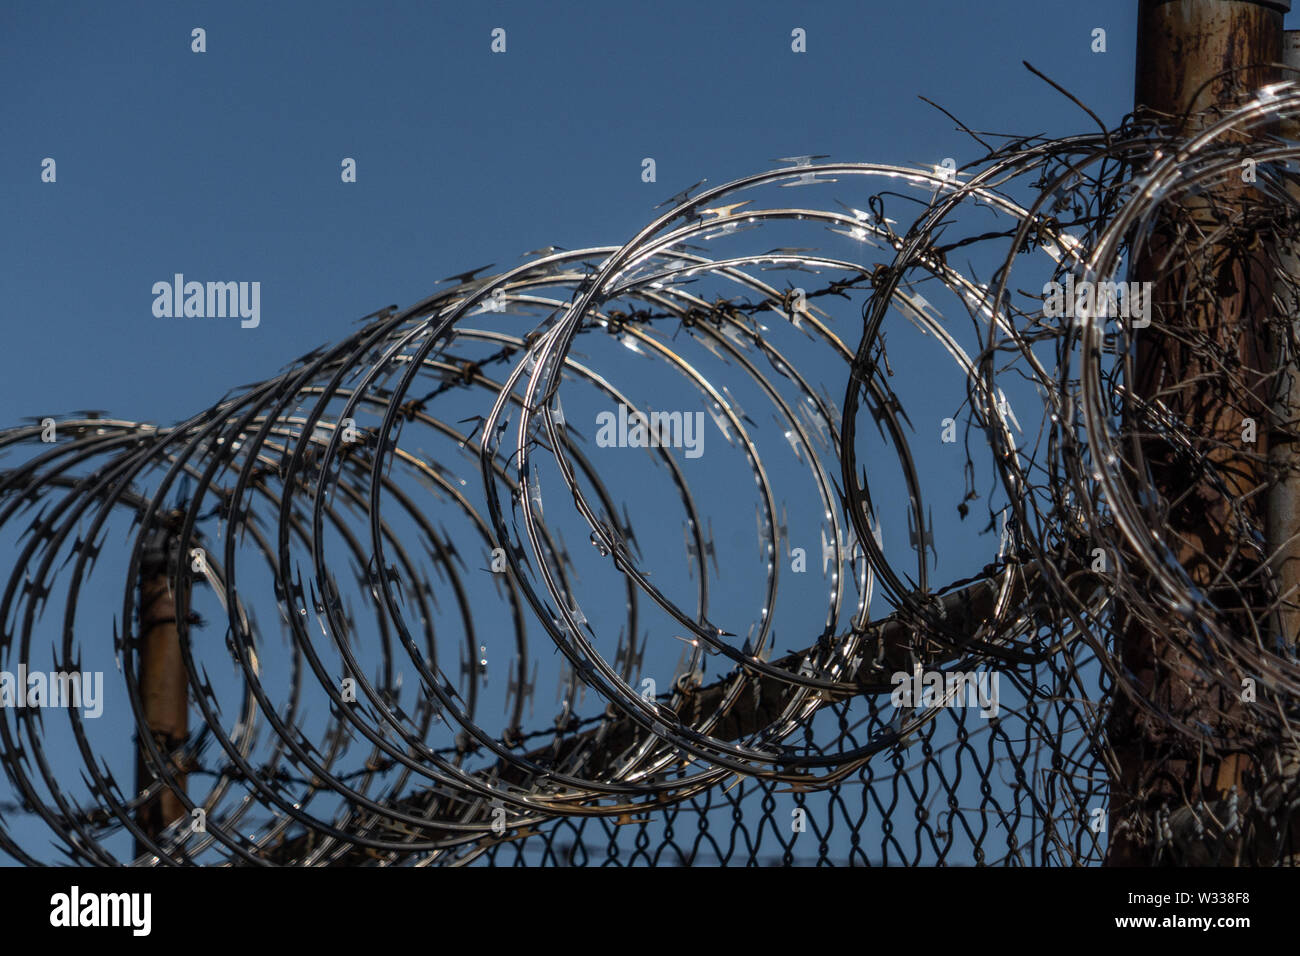 barbed wire on a fense with a blue sky behind - Stock Image